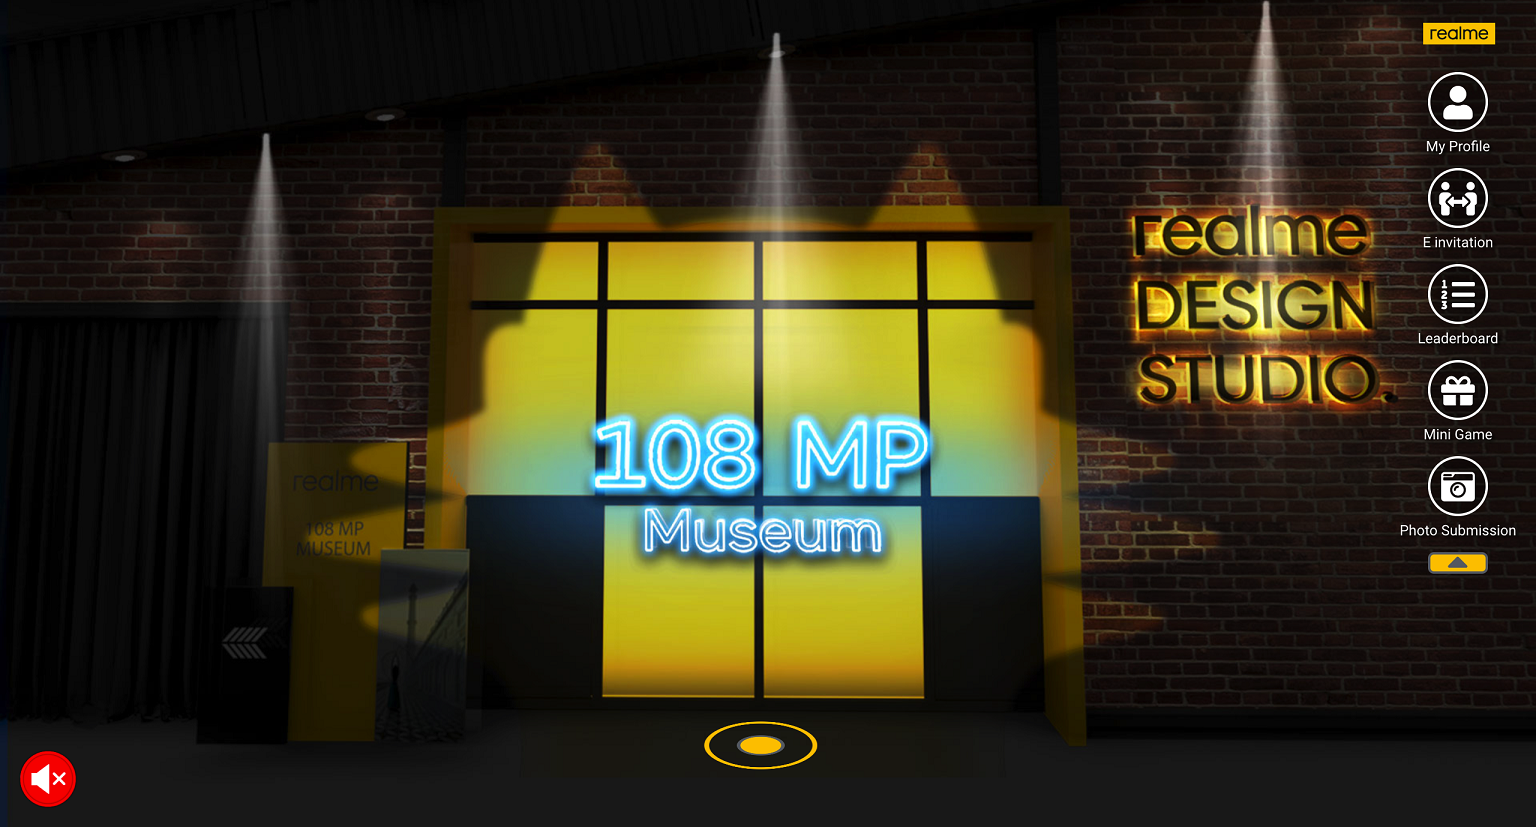 THE WORLD'S FIRST 108MP MUSEUM BY REALME MALAYSIA IS NOW OPEN TO PUBLIC